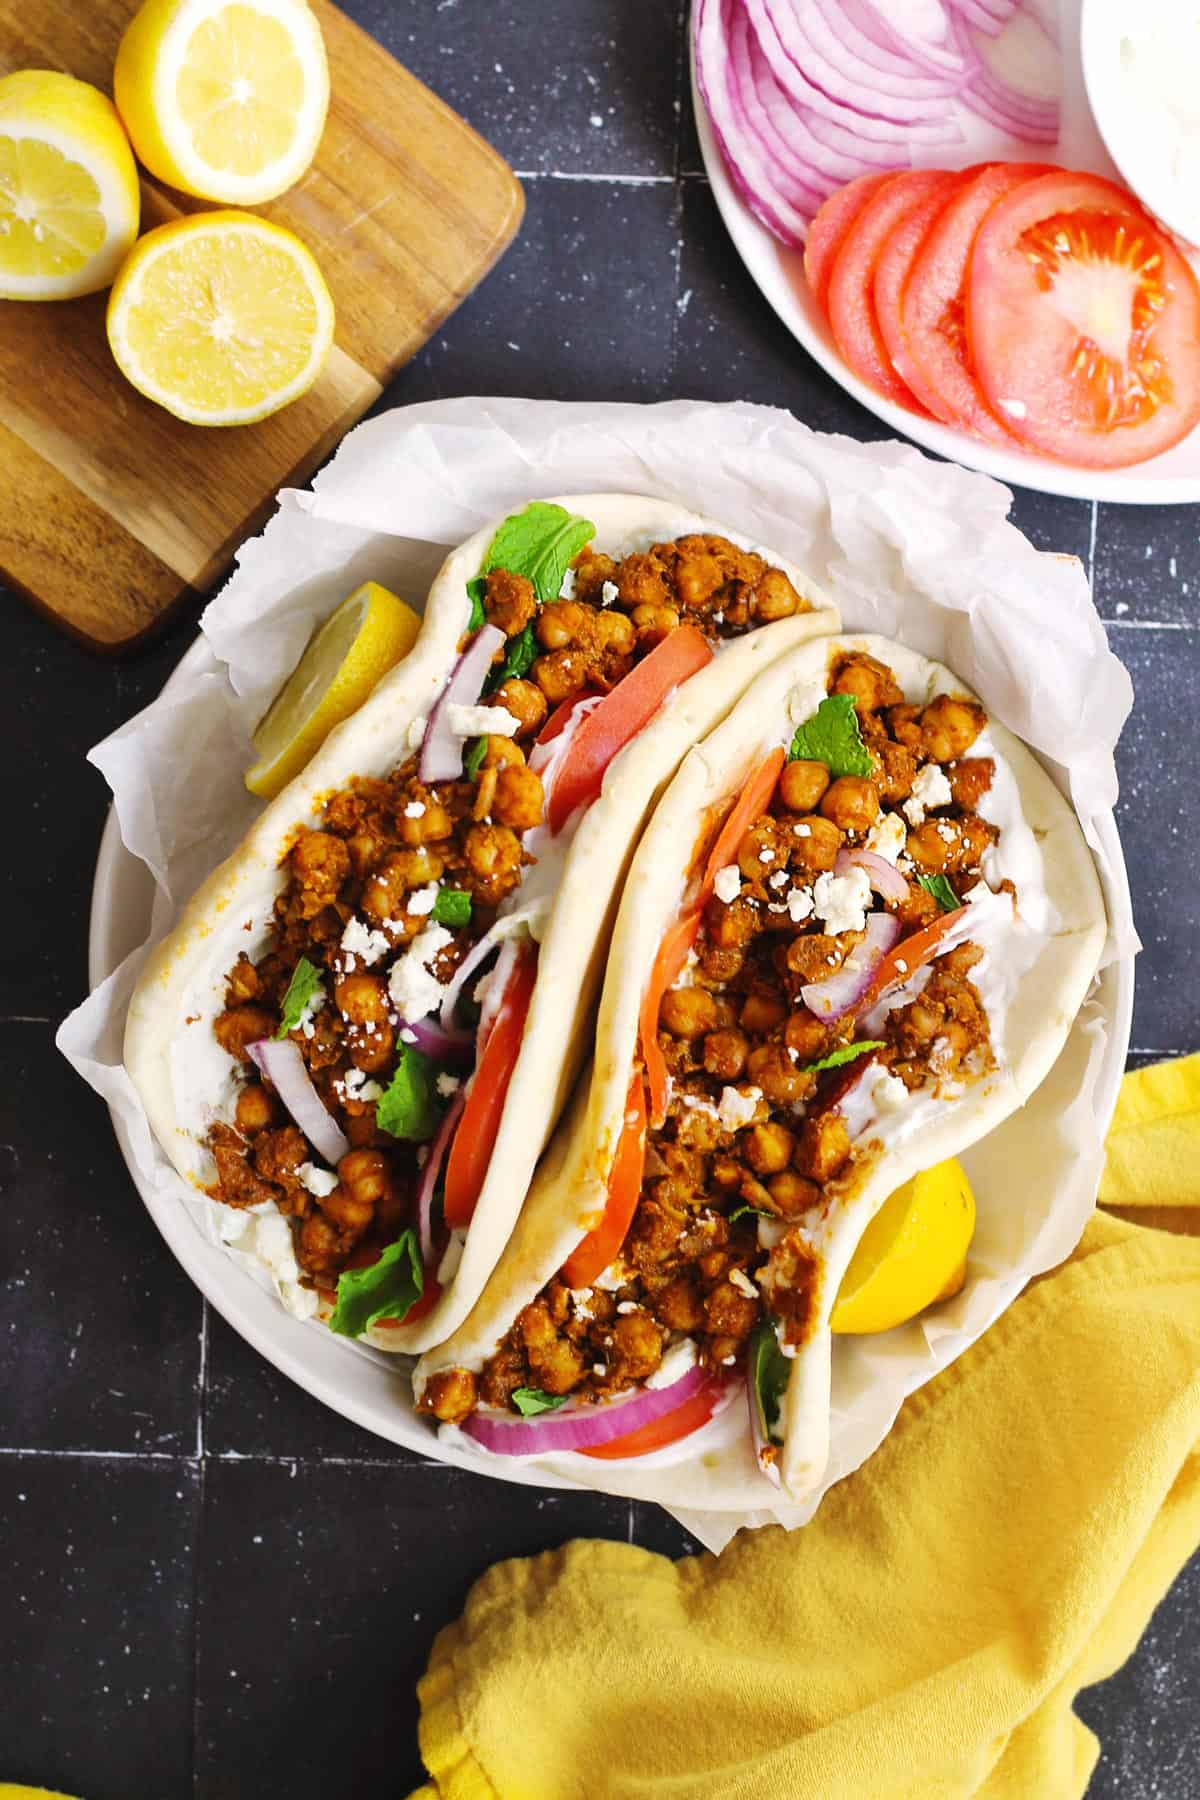 Chickpea gyros in pita